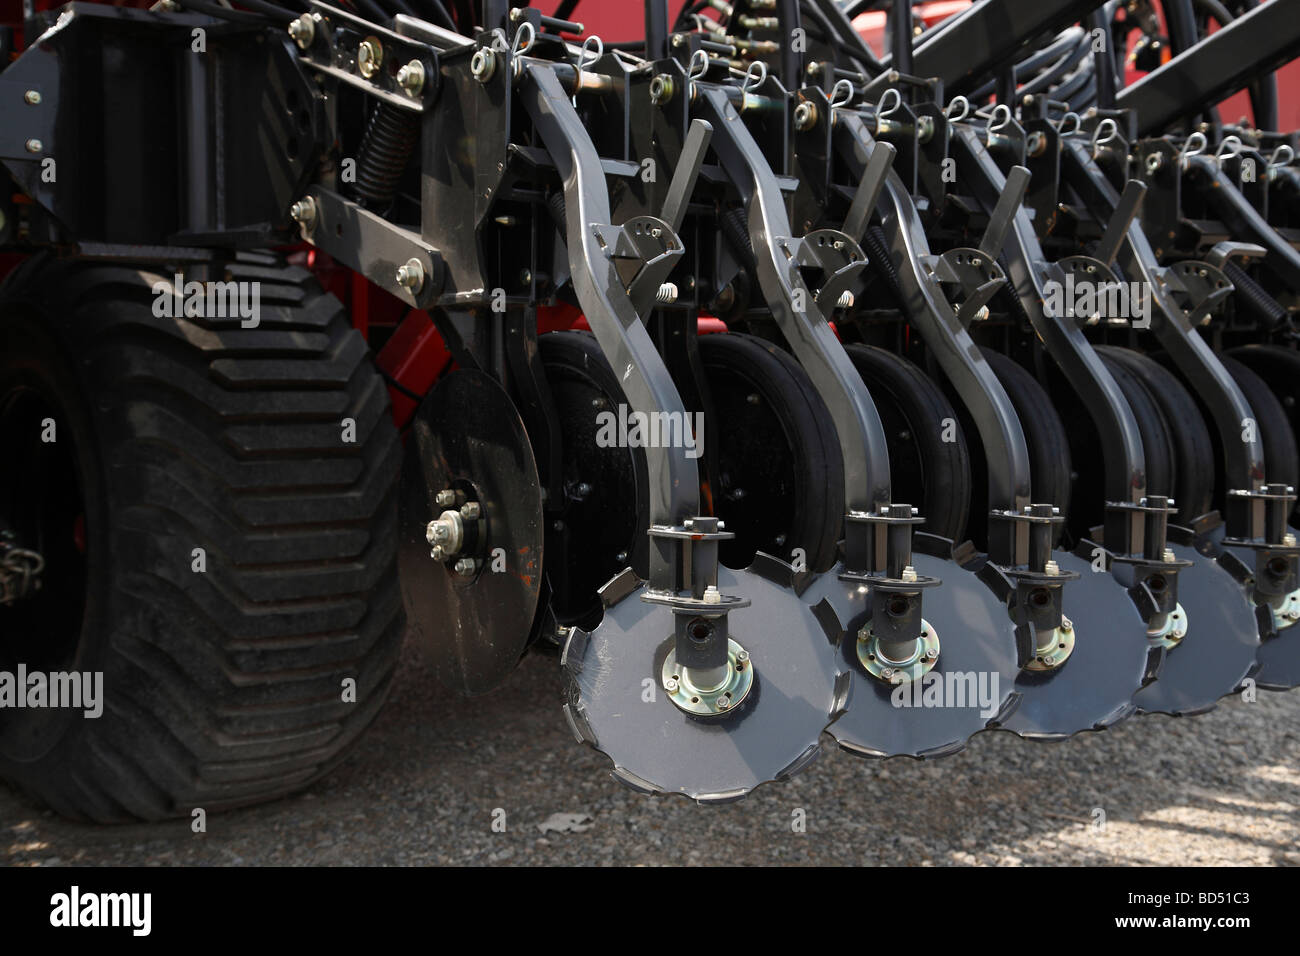 agricultural agriculture farming Heavy duty equipment Hiniker machine machines rotary disc closer seeder seeders - Stock Image